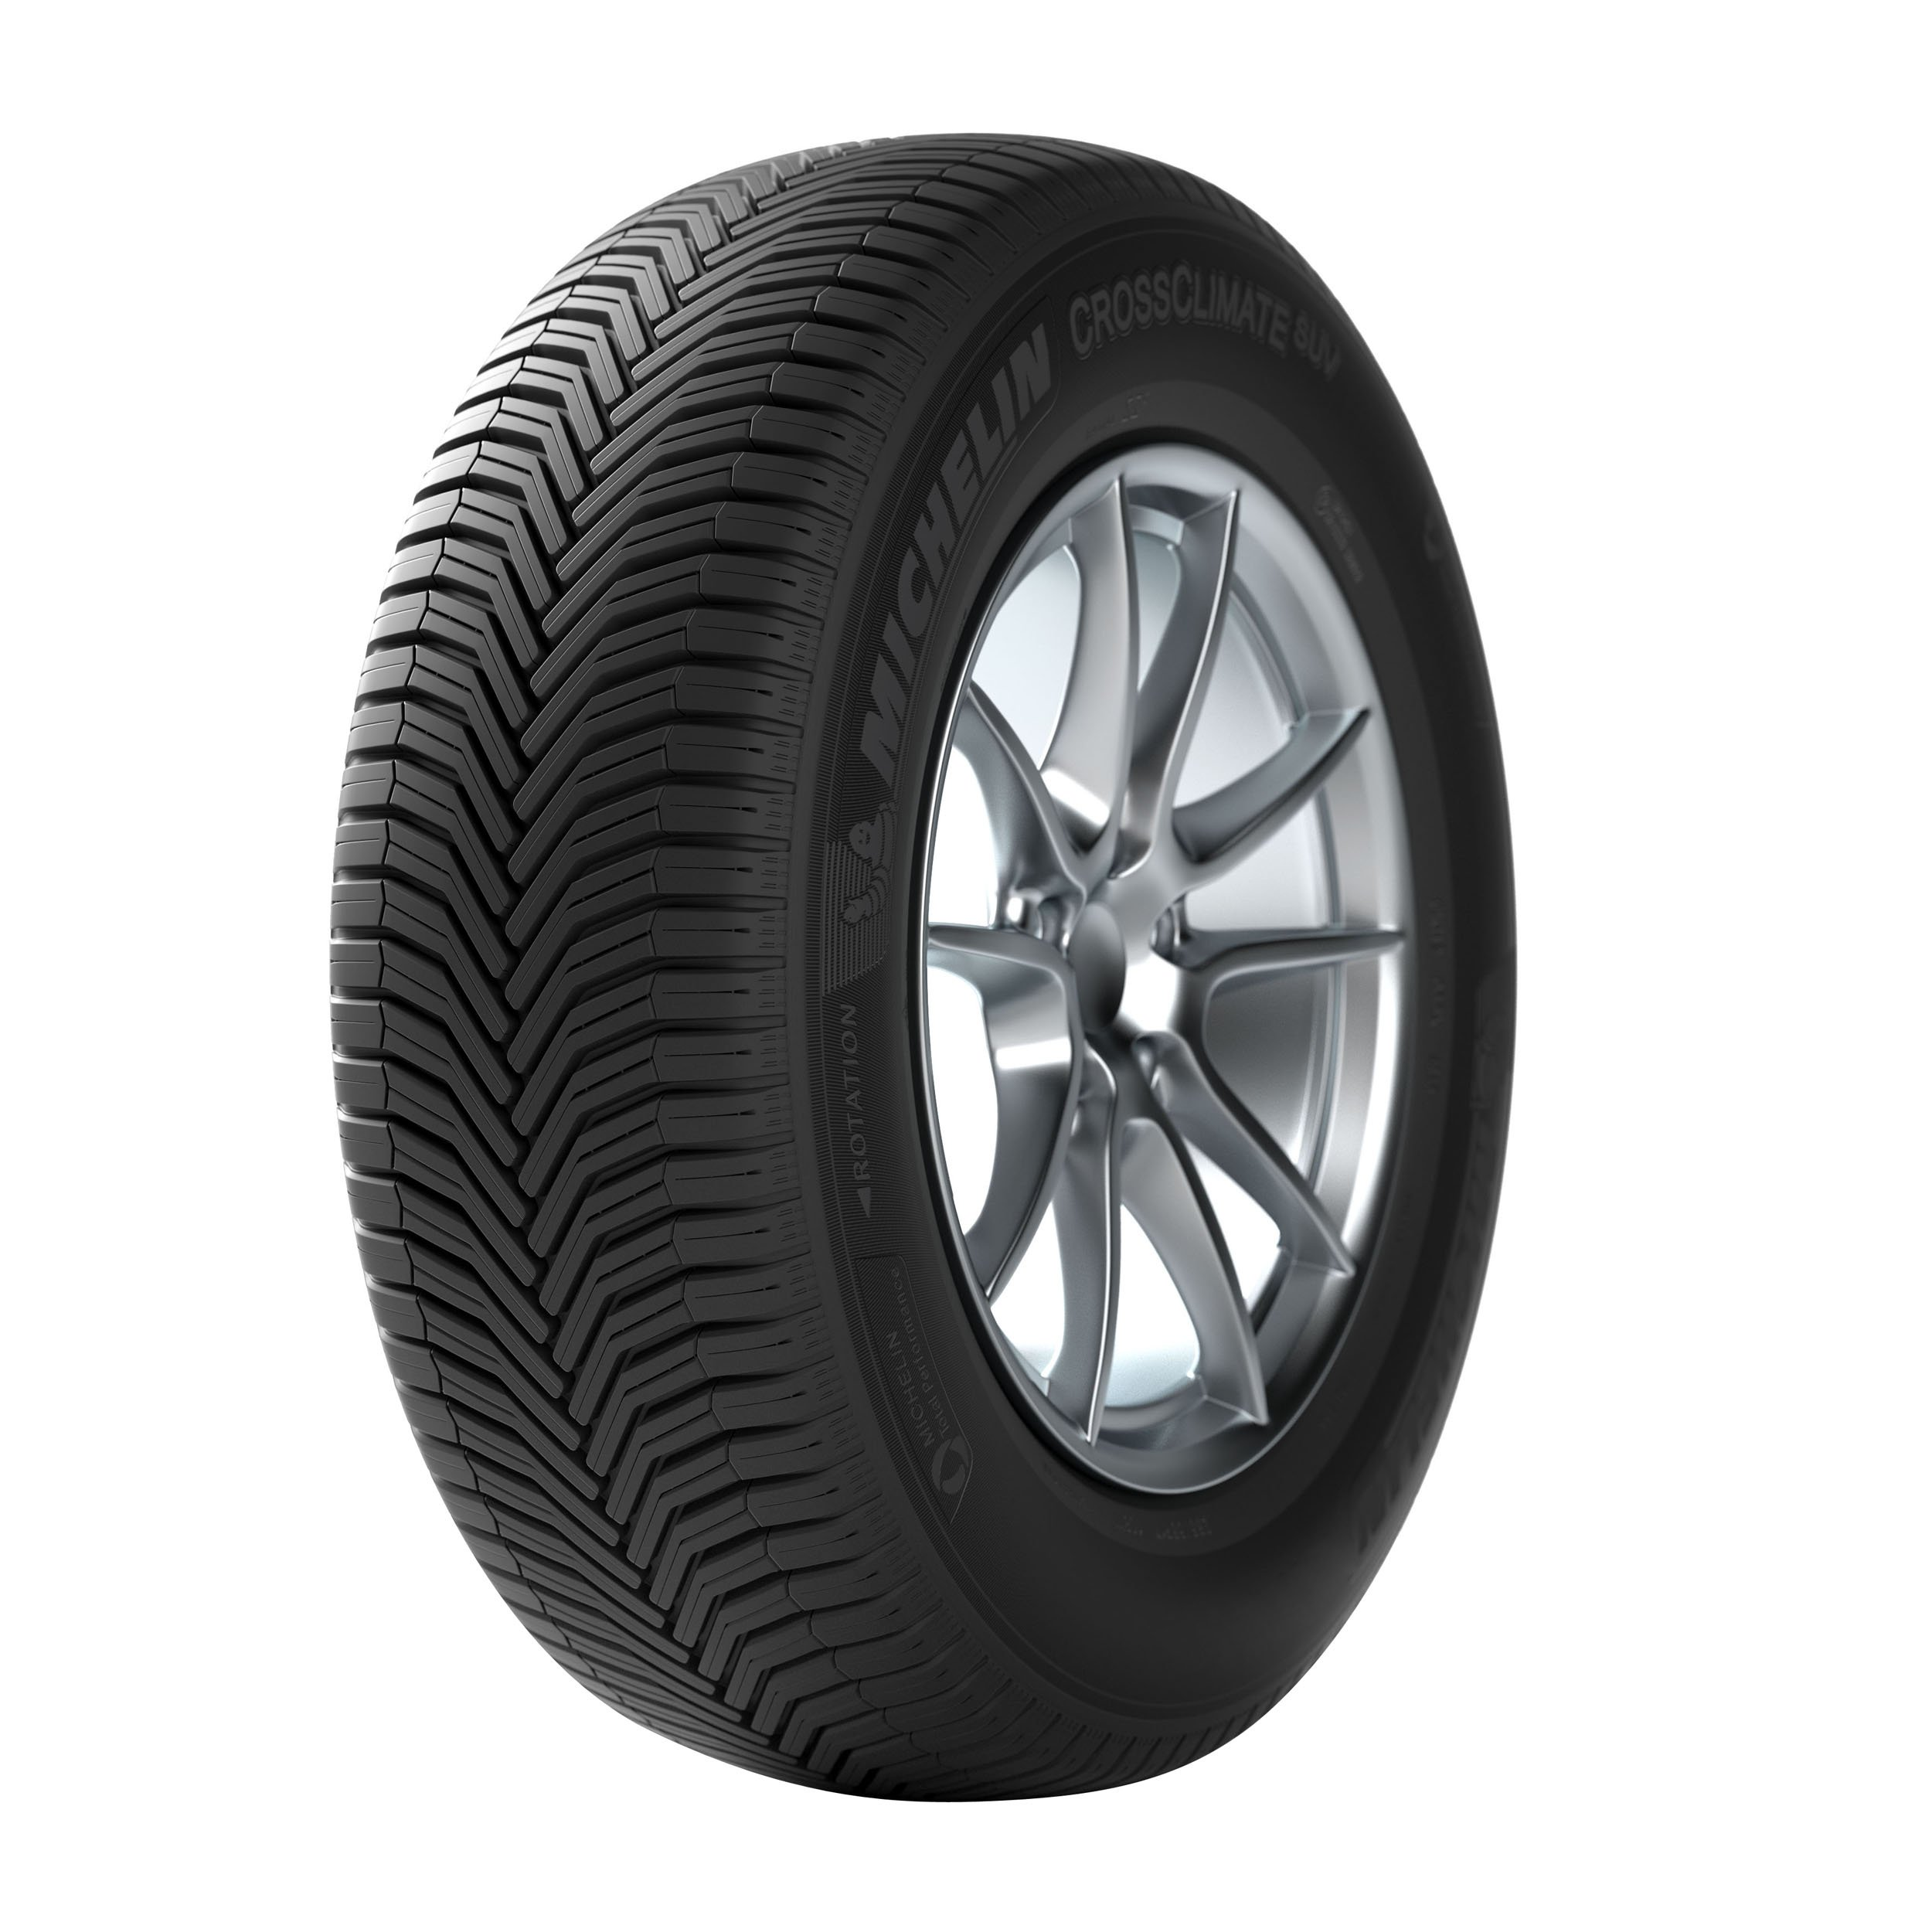 1x r19 michelin crossclimate suv 107y 2019 all season